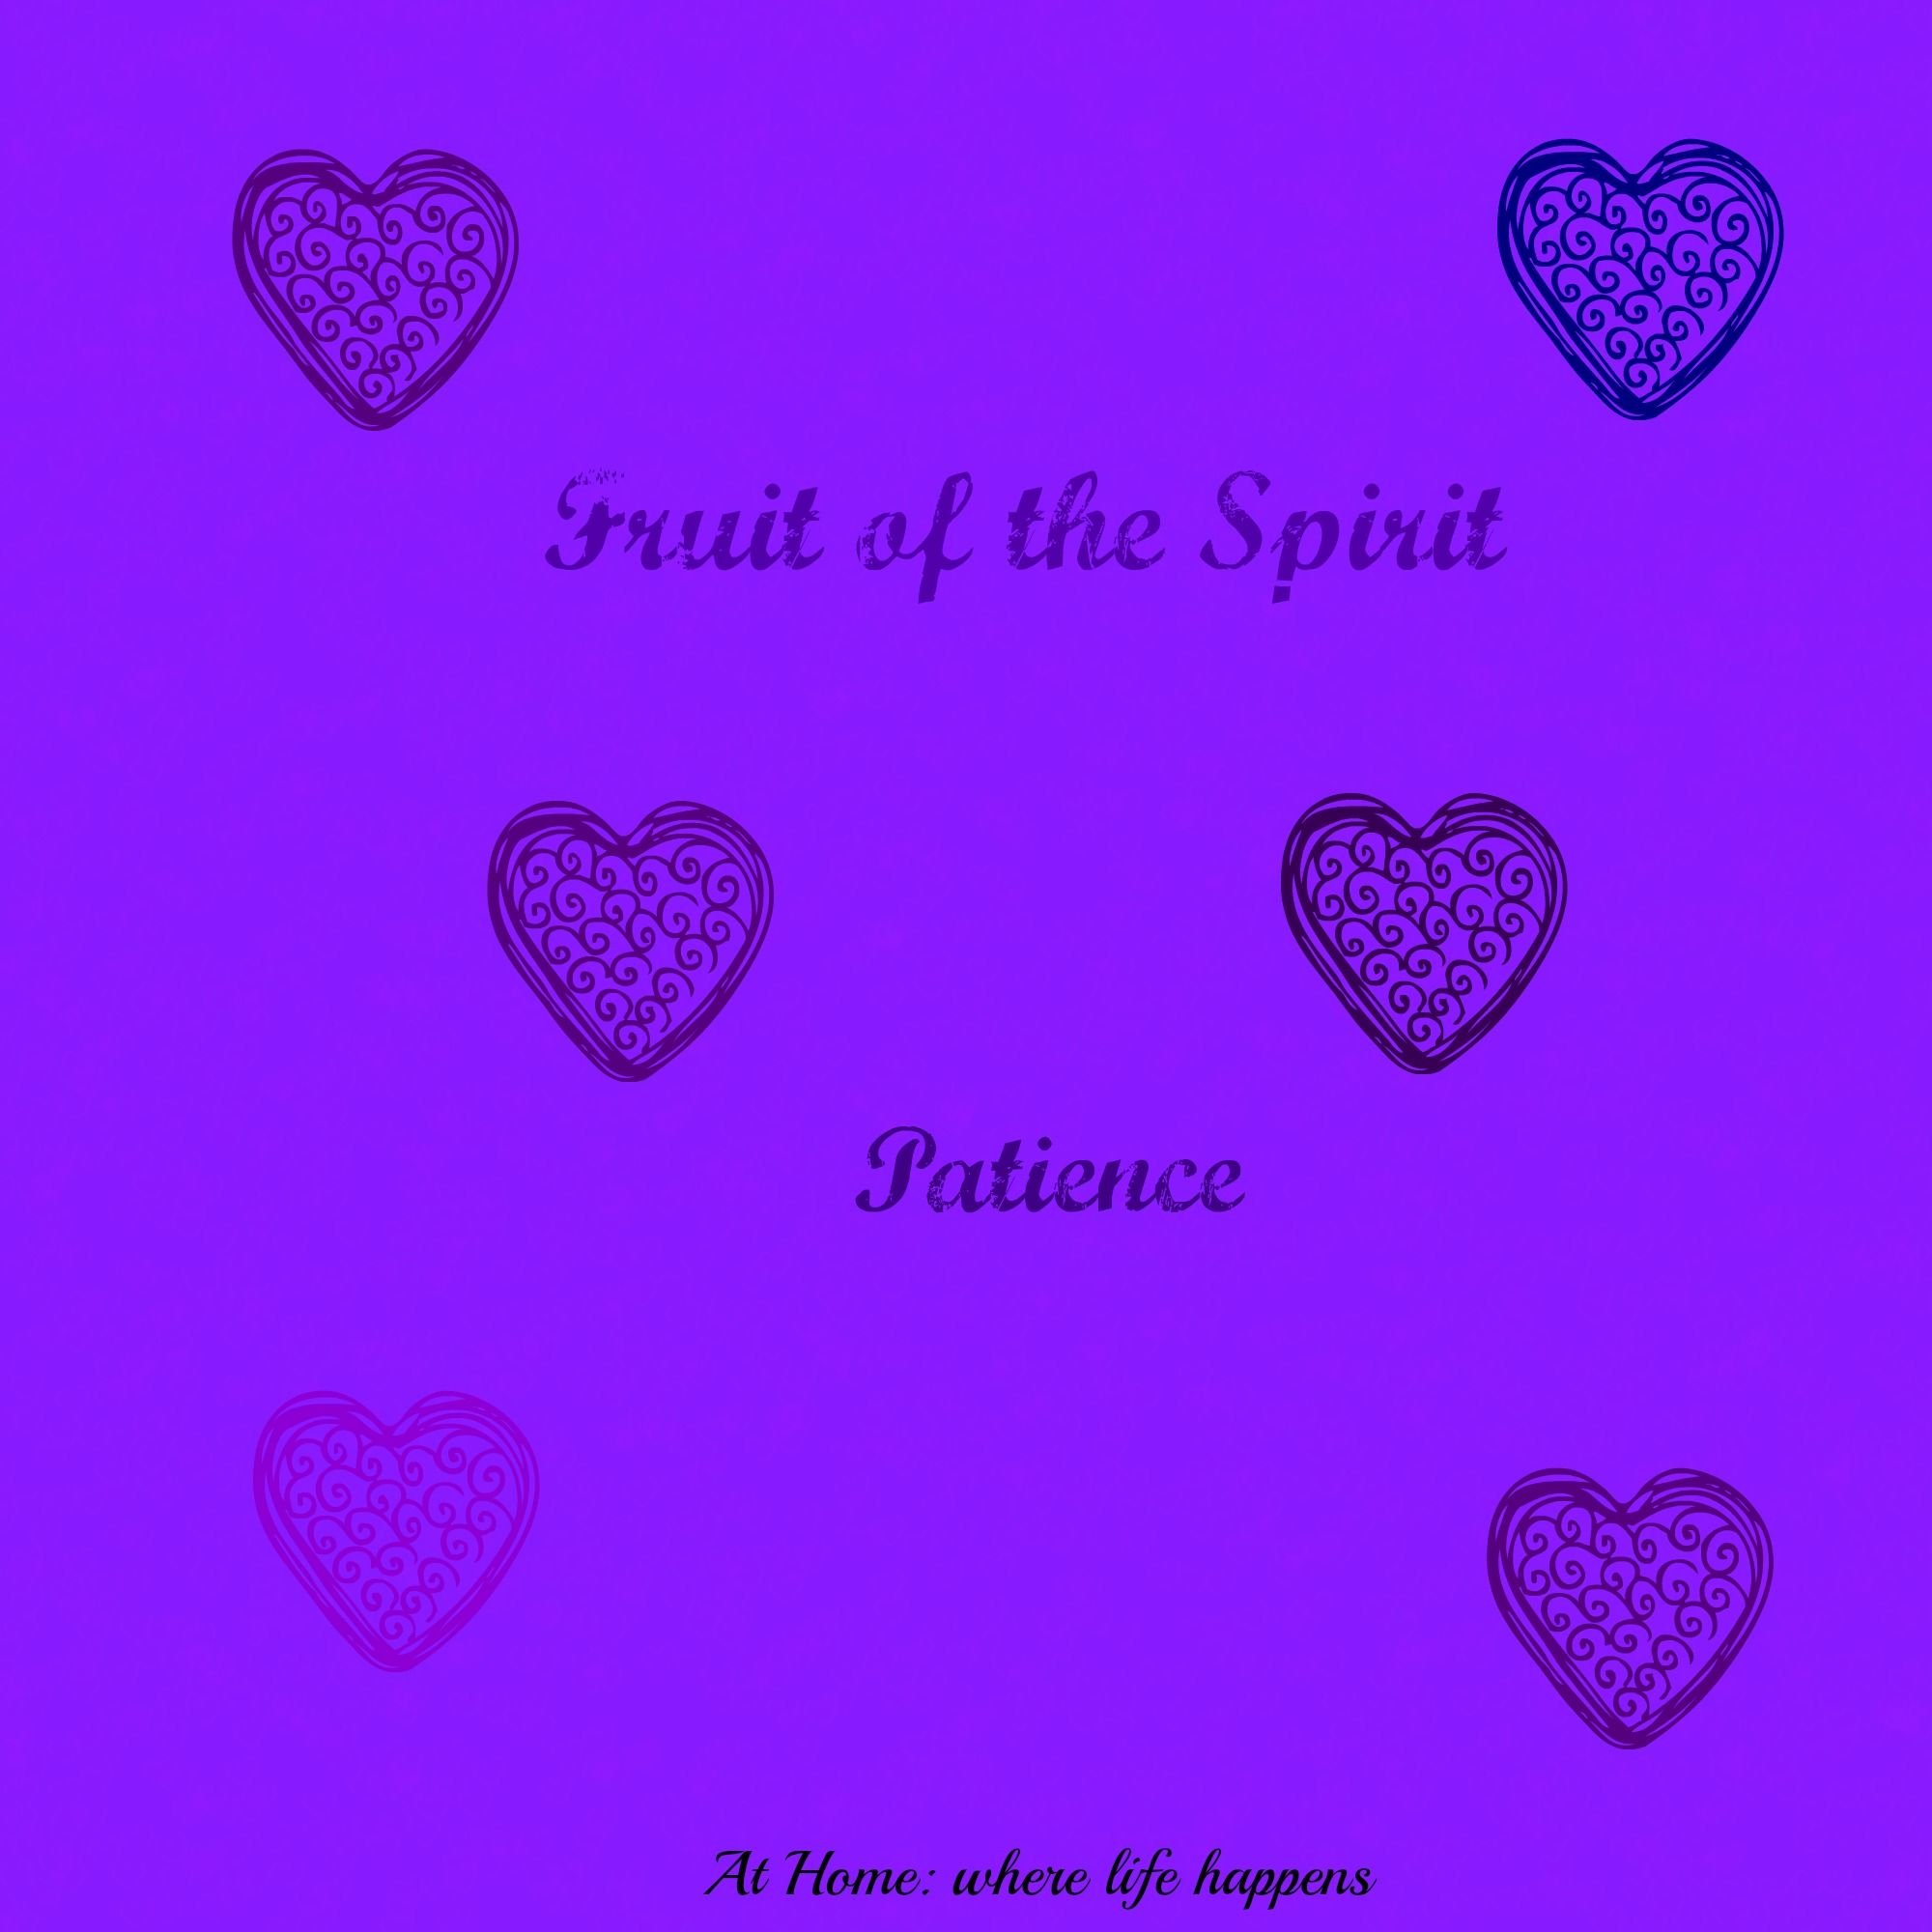 Worksheets Fruit Of The Spirit Worksheets fruit of the spirit patience printable worksheets and a bible study on that includes printable